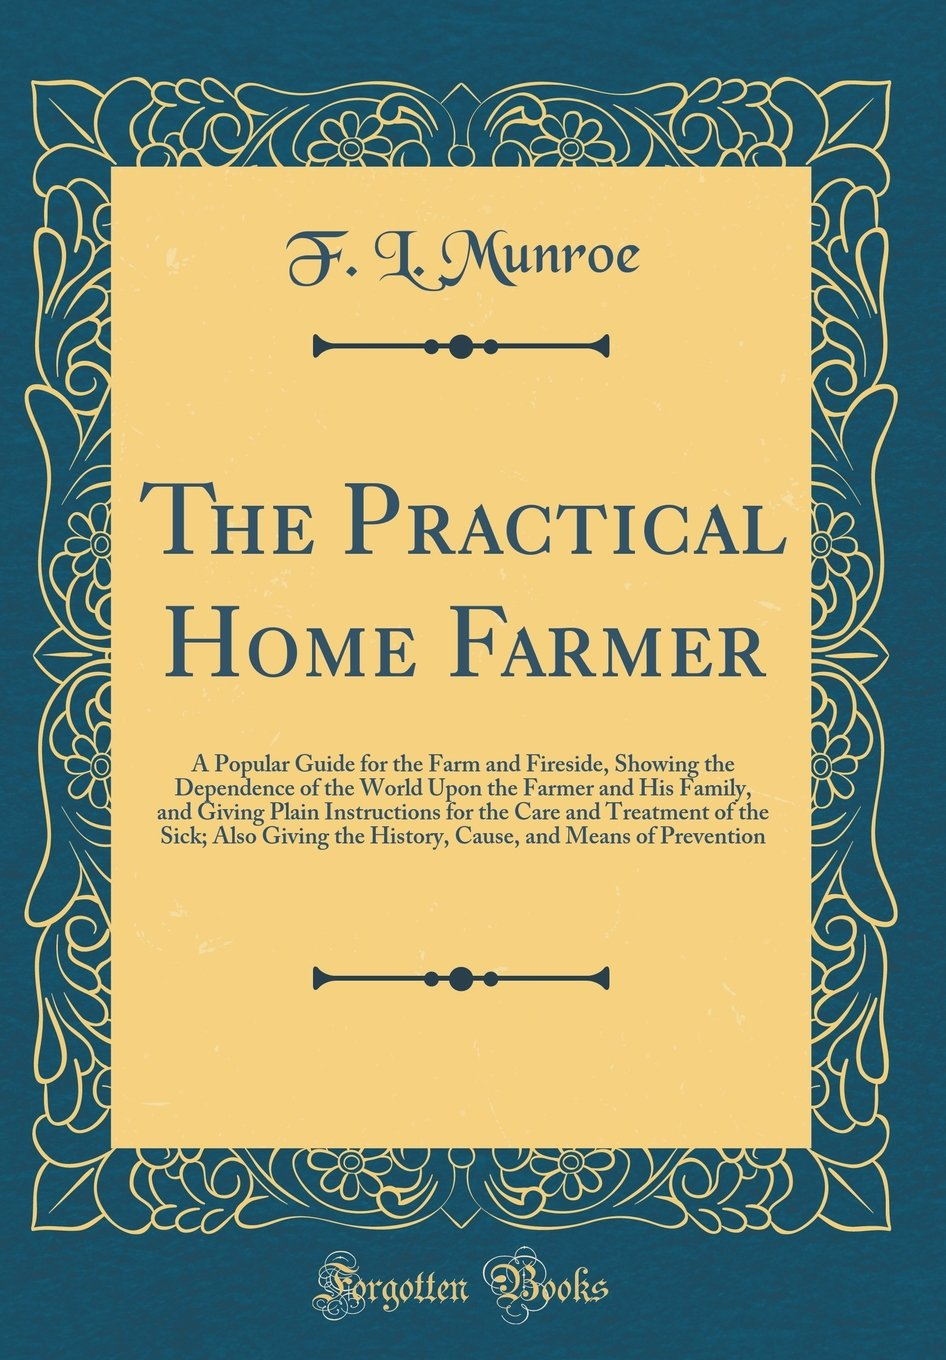 Download The Practical Home Farmer: A Popular Guide for the Farm and Fireside, Showing the Dependence of the World Upon the Farmer and His Family, and Giving ... Giving the History, Cause, and Means of Pr pdf epub